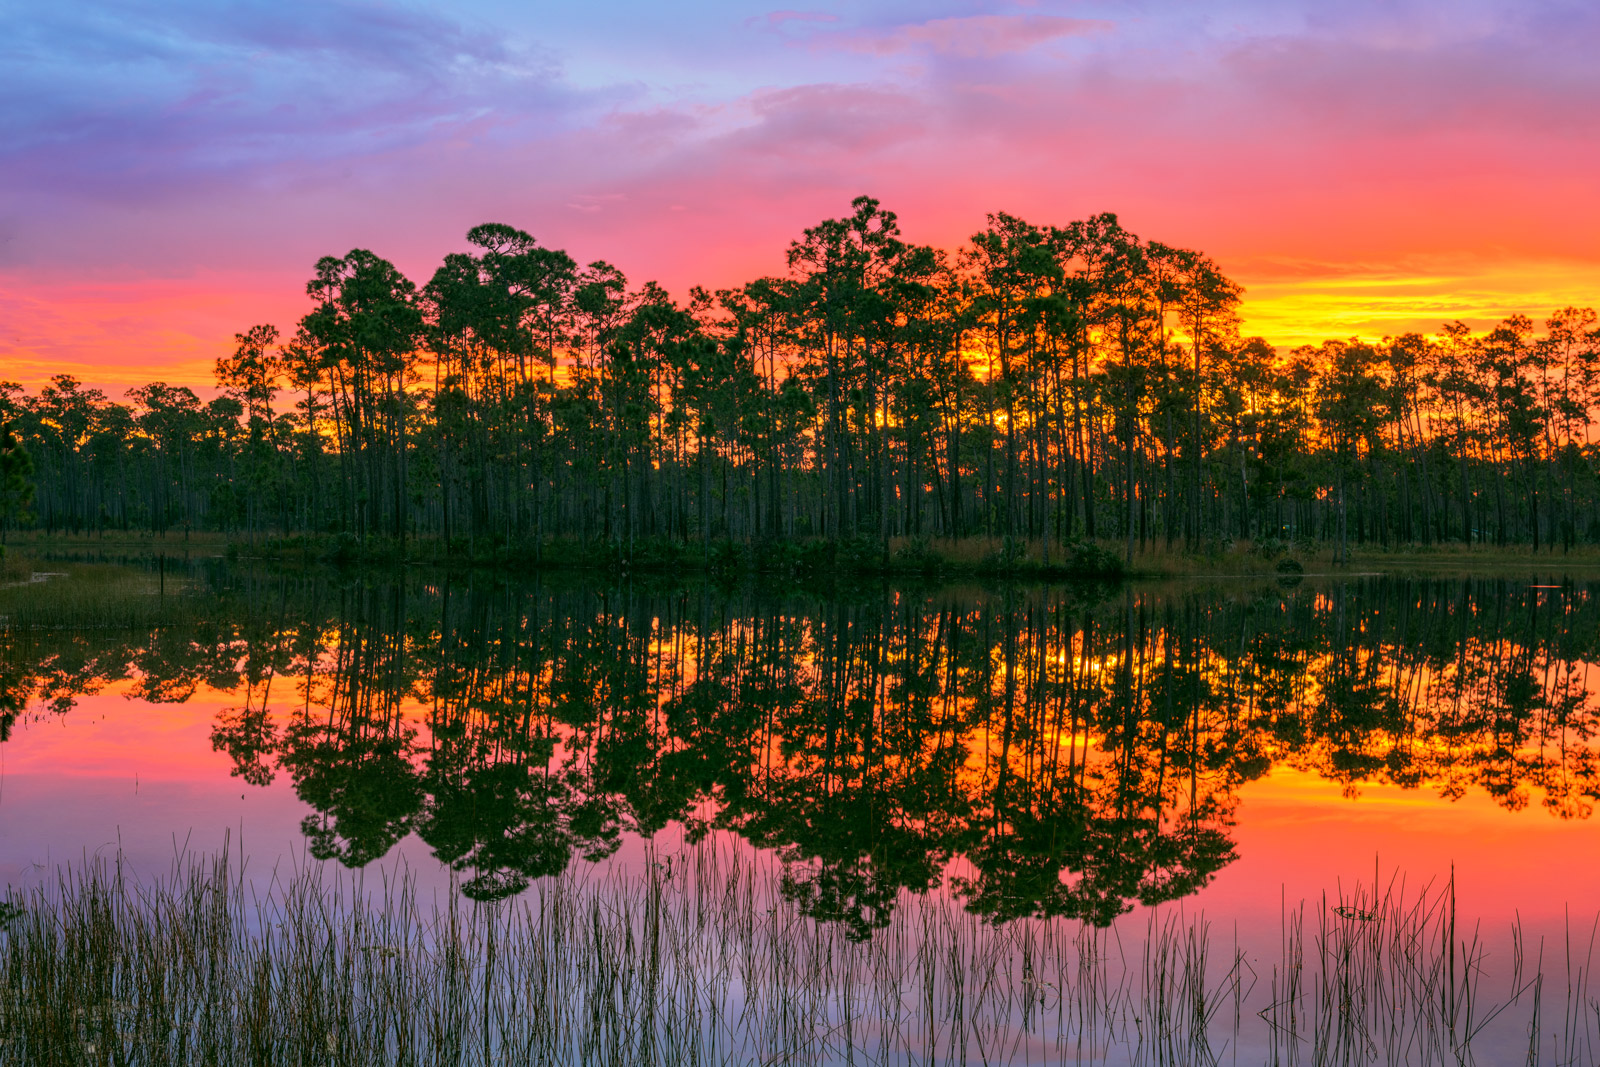 A Limited Edition, Fine Art photograph of a stunning sunrise at Long Pine Key in the Florida Everglades. Available as a Fine...